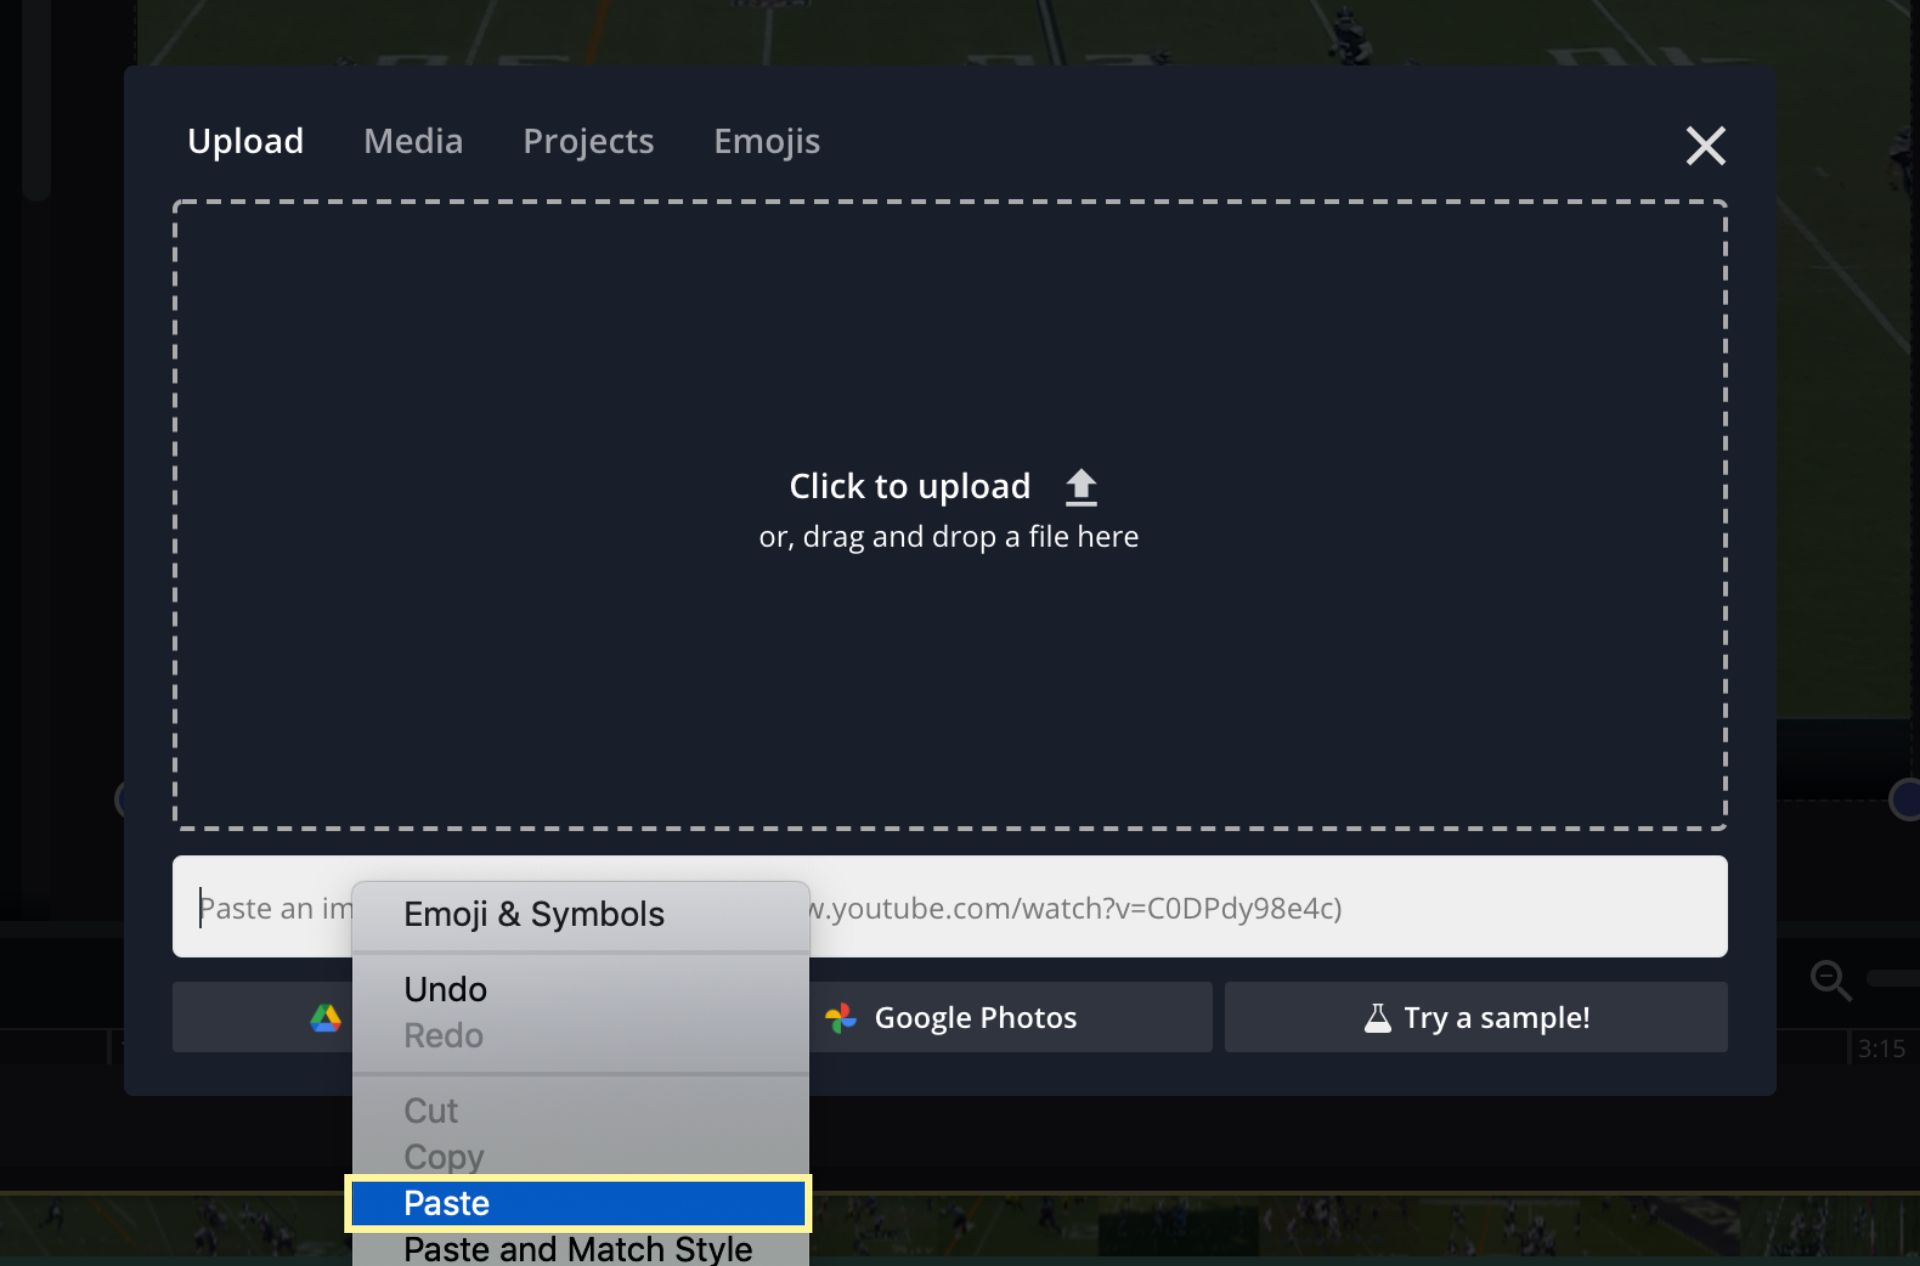 A screenshot showing you to upload videos to the Kapwing Studio from YouTube.